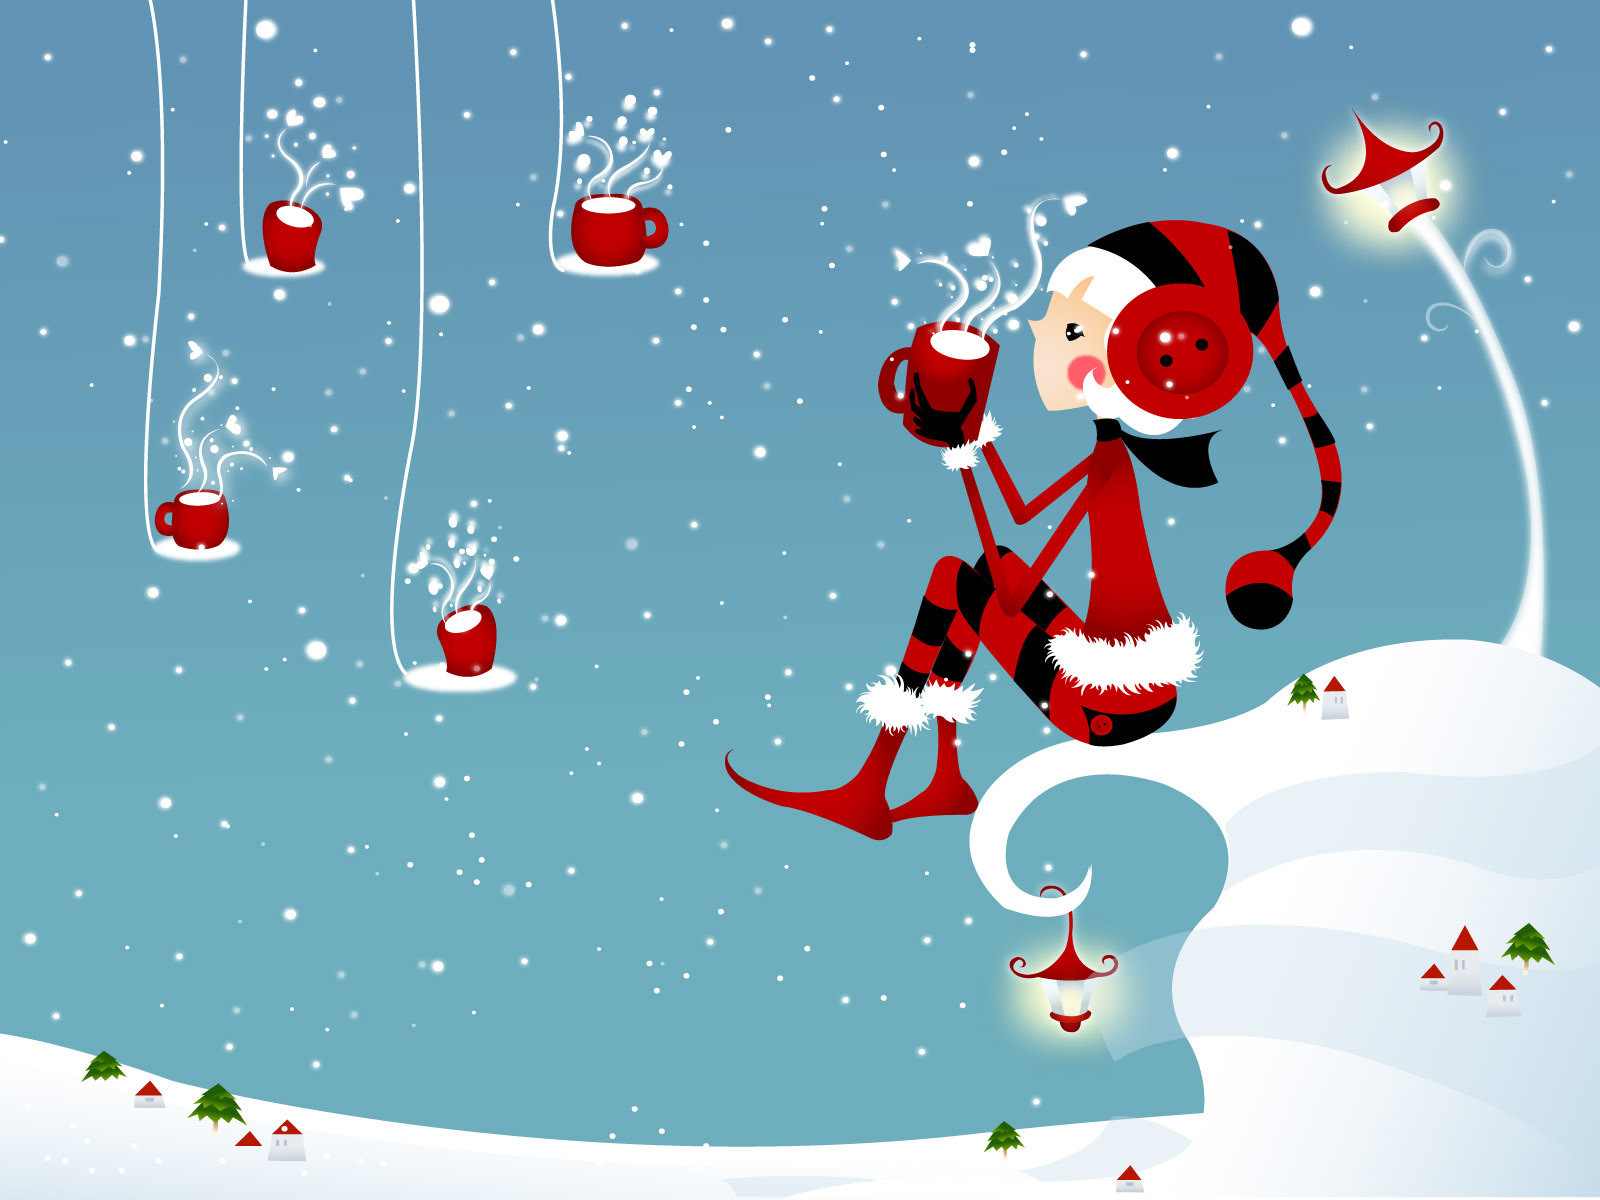 Snoopy Christmas Wallpapers Snoopy Christmas Wallpapers